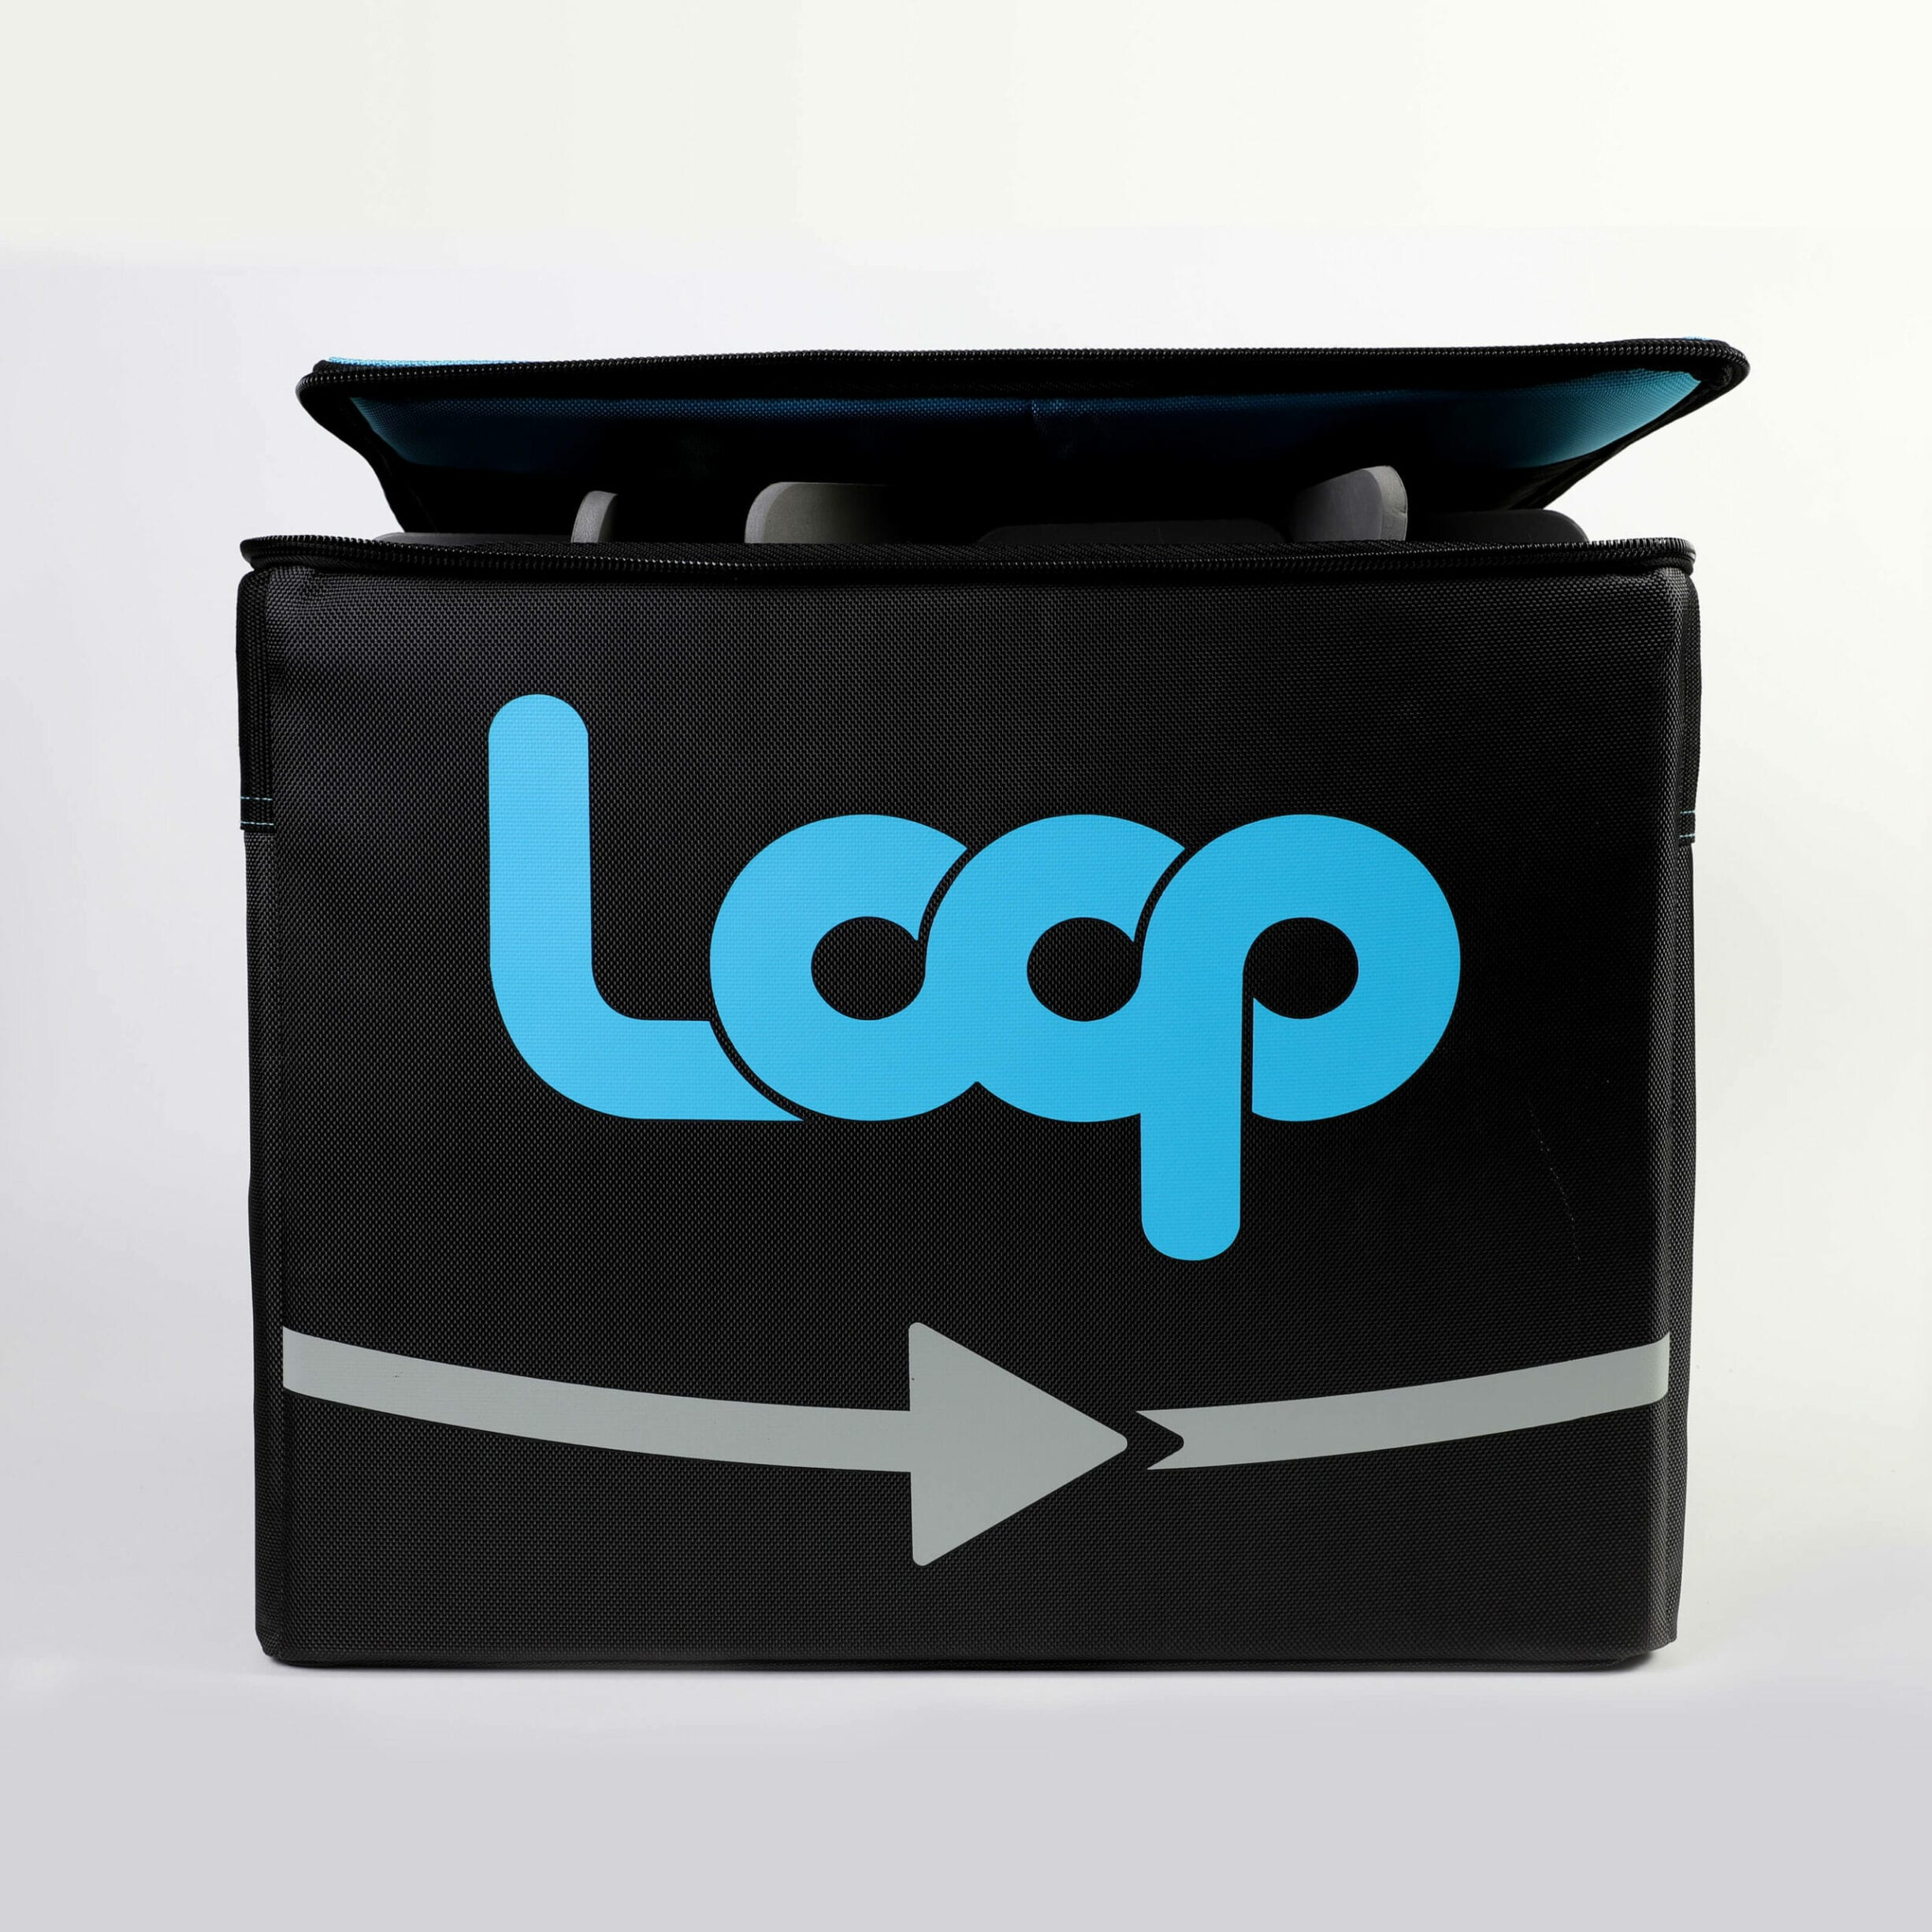 Our Take on Loop, A New Reusable Packaging Delivery Service